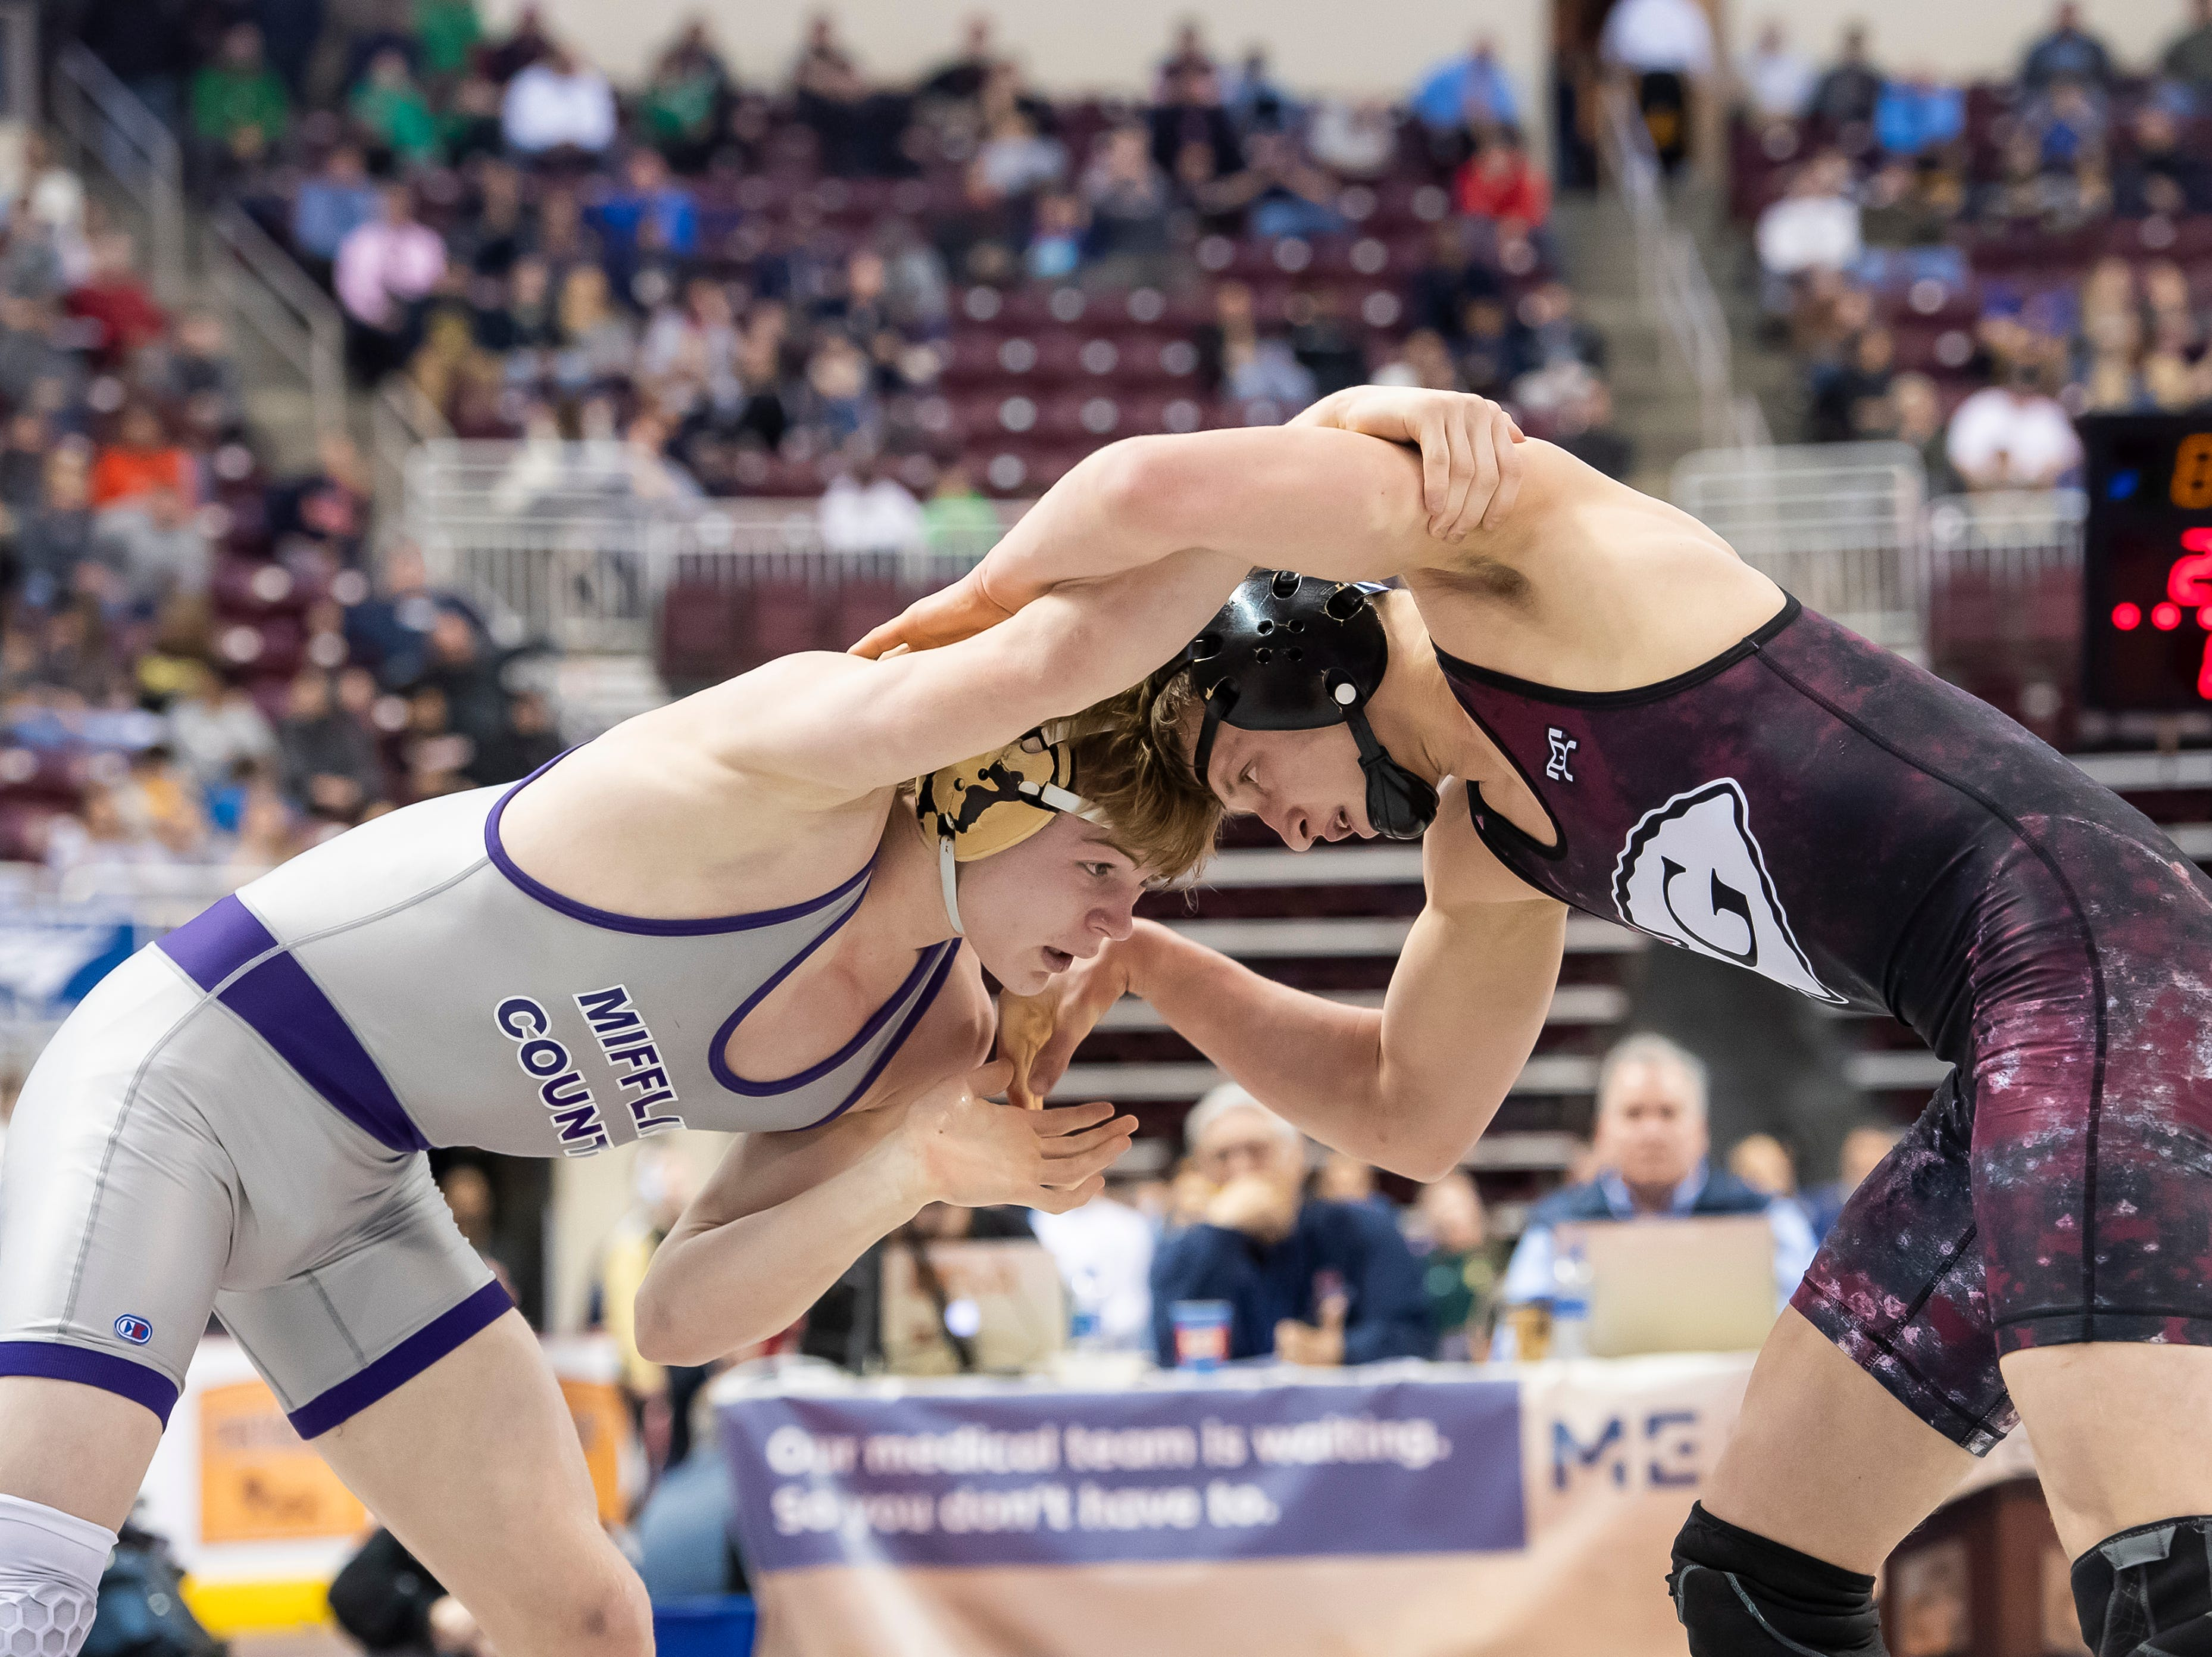 Gettysburg's Dylan Reinert, right, wrestles Mifflin County's Trey Kibe during the 3A 160-pound quarterfinal bout at the Giant Center in Hershey Friday, March 8, 2019. Kibe won 4-2 in sudden victory.